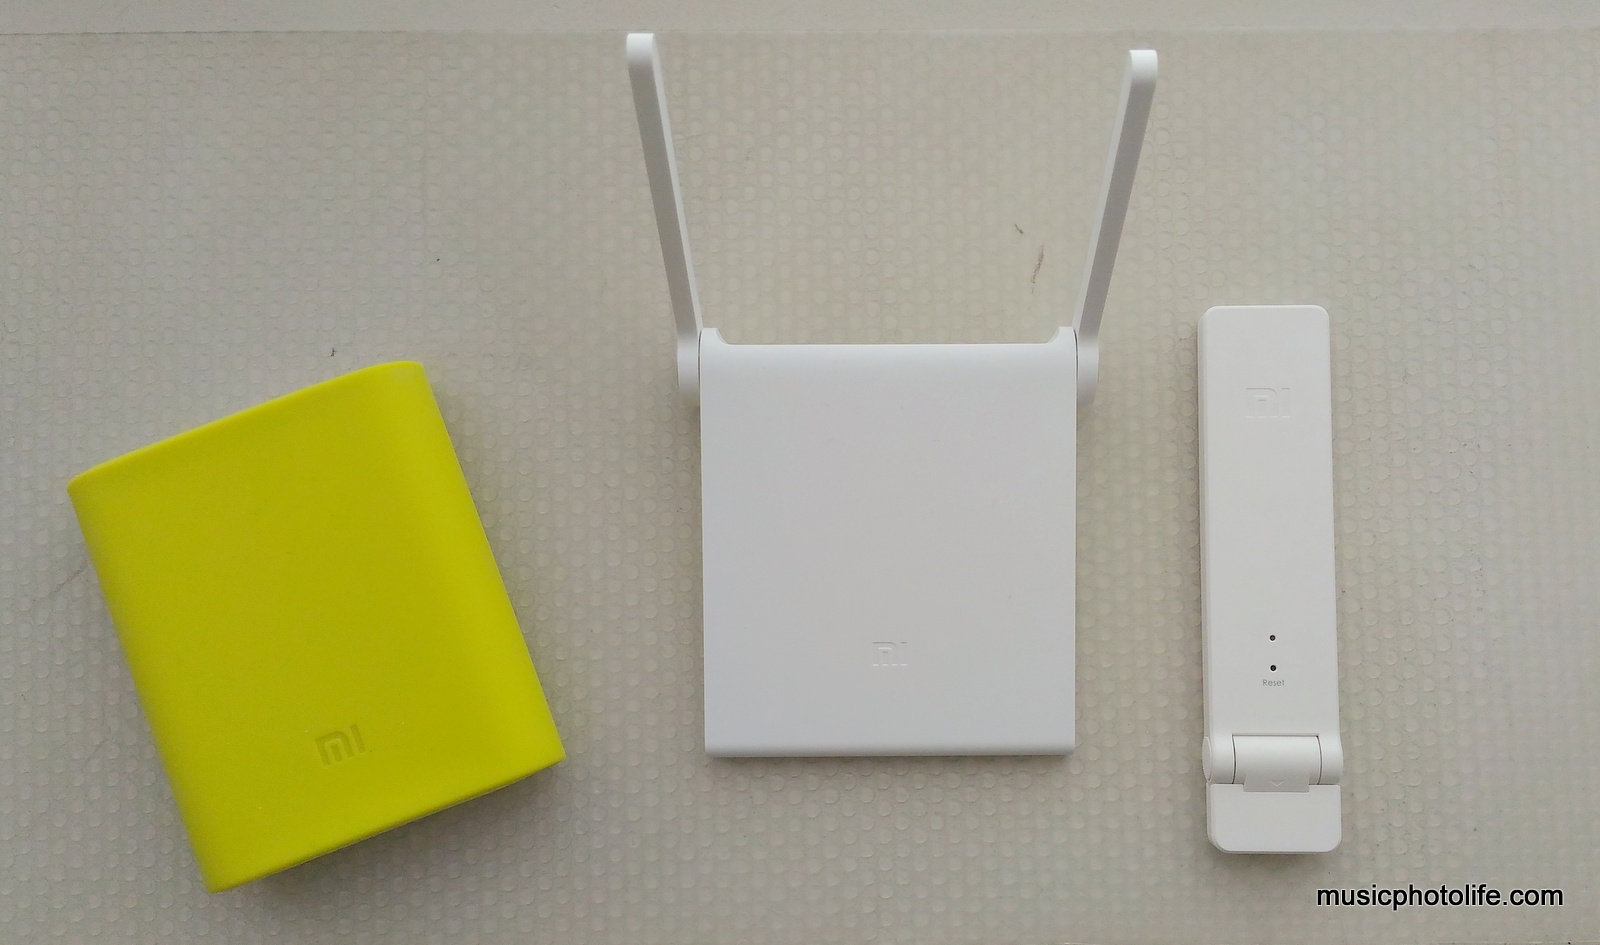 Mi WiFi Router Youth Edition and Amplifier: Detailed Review